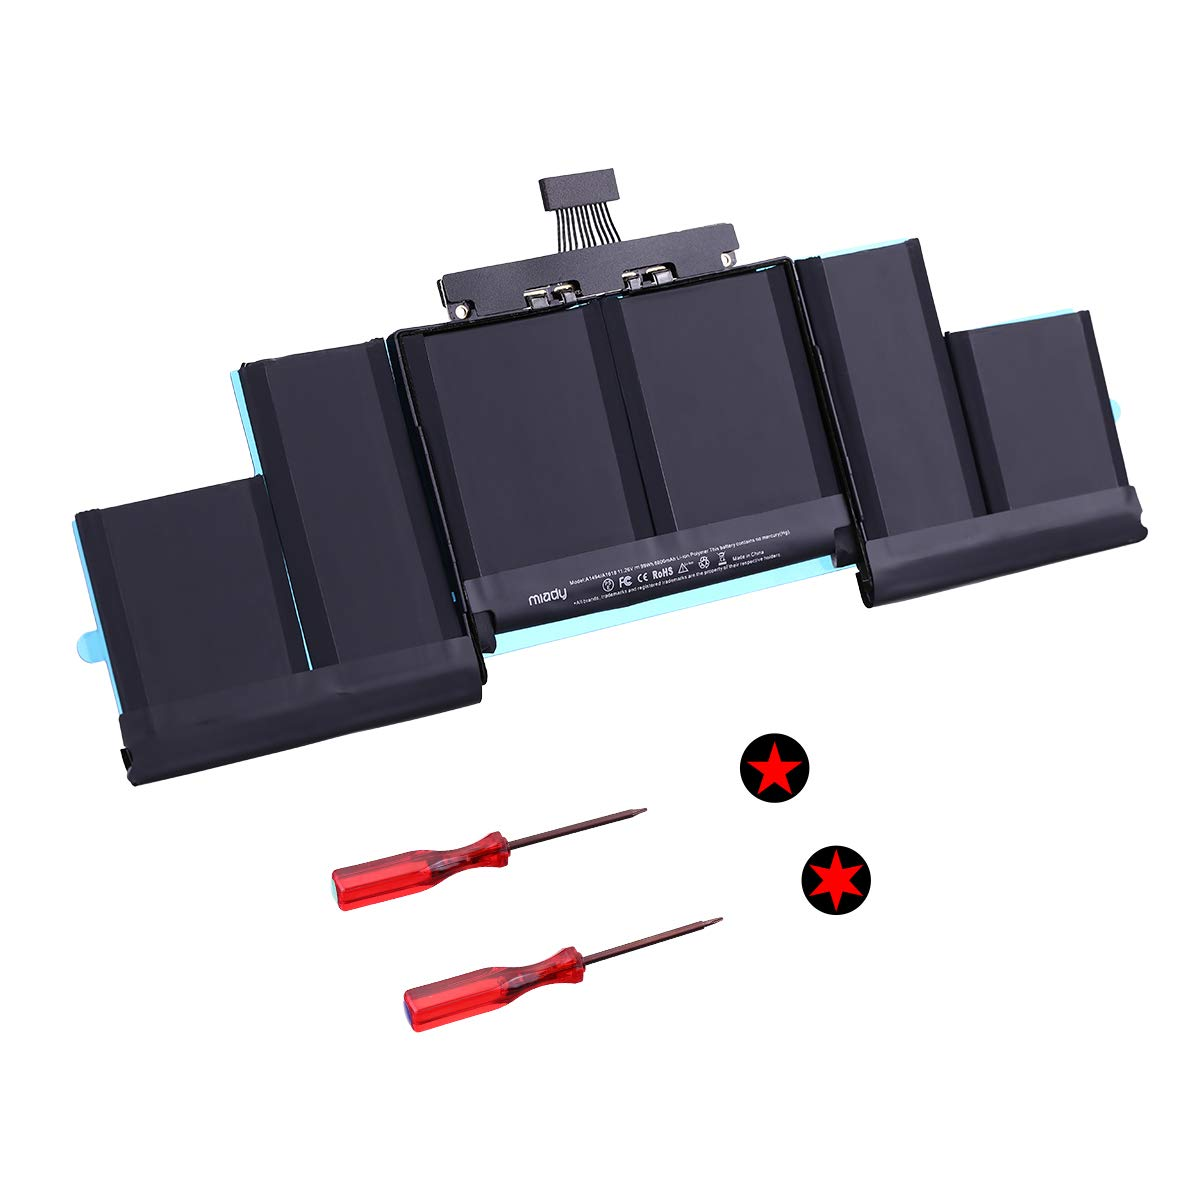 ME293 ME294 MGXA2 MGXC2 MJLQ2 MJLT2 MJLU2 Late 2013 Mid 2014 2015 A1494 A1618 New Replacement Battery Compatible with MacBook Pro15 Inch Retina A1398